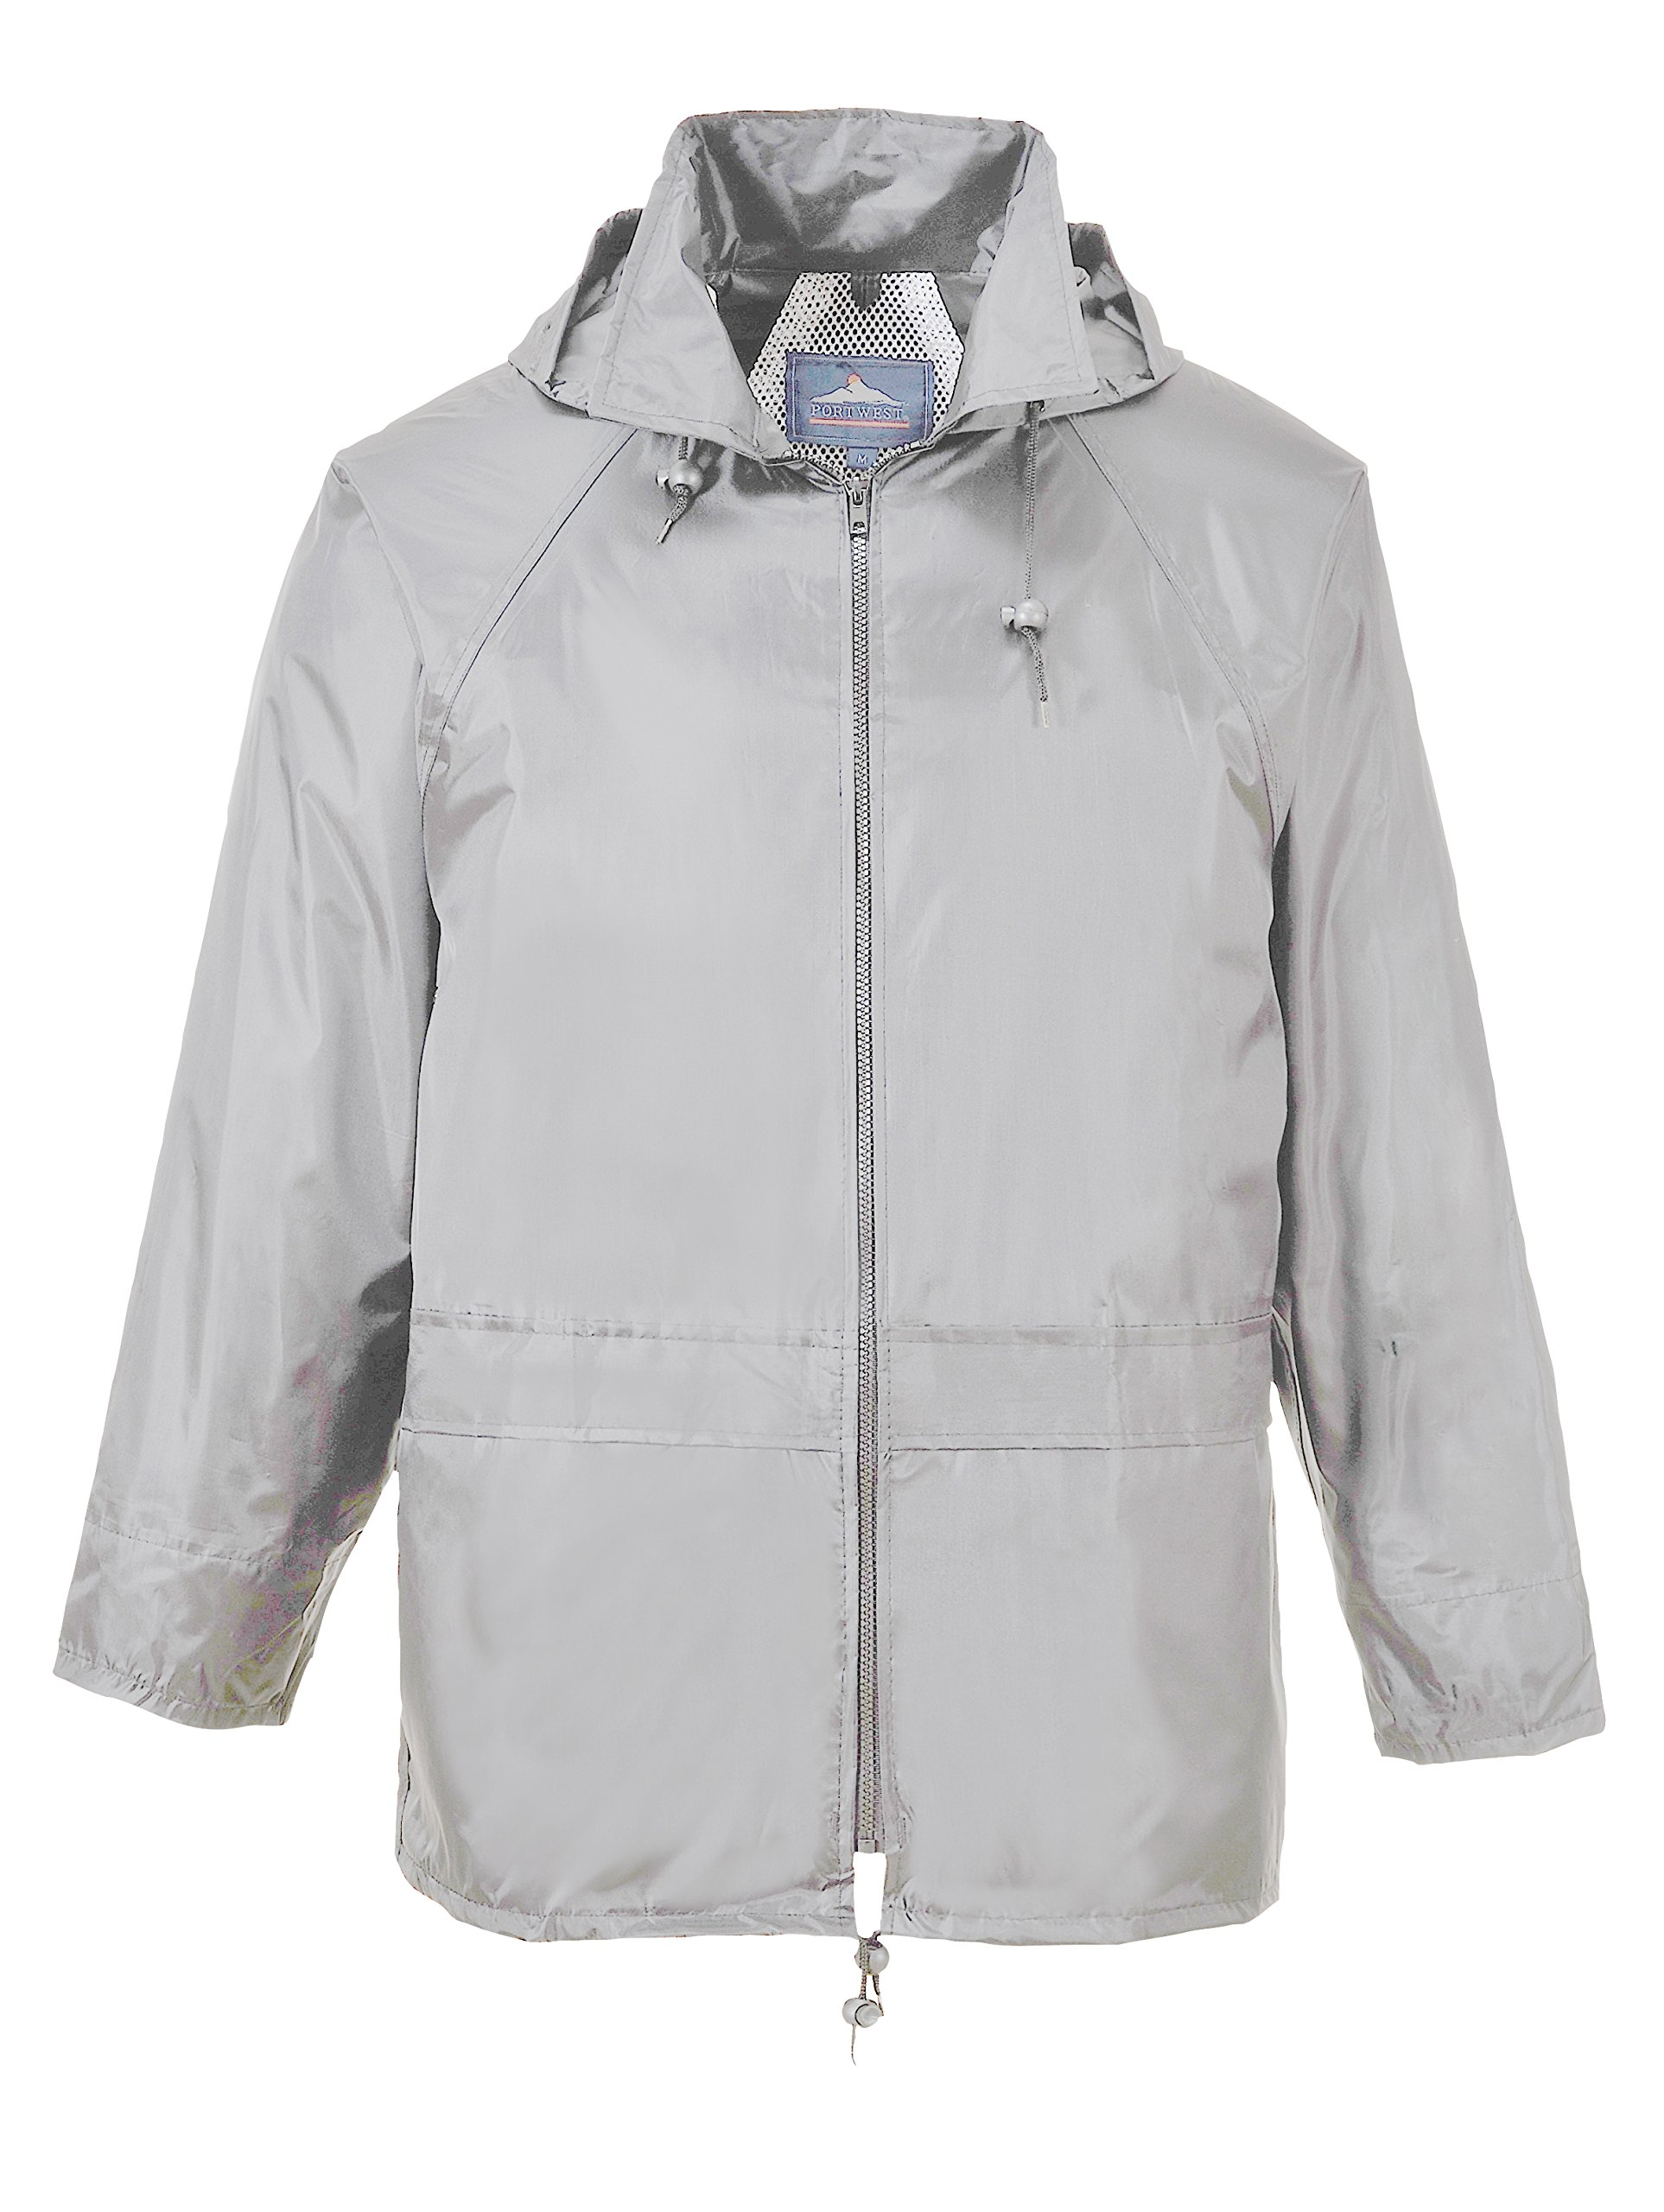 Portwest Workwear Mens Rain Jacket Grey Medium by Portwest (Image #1)